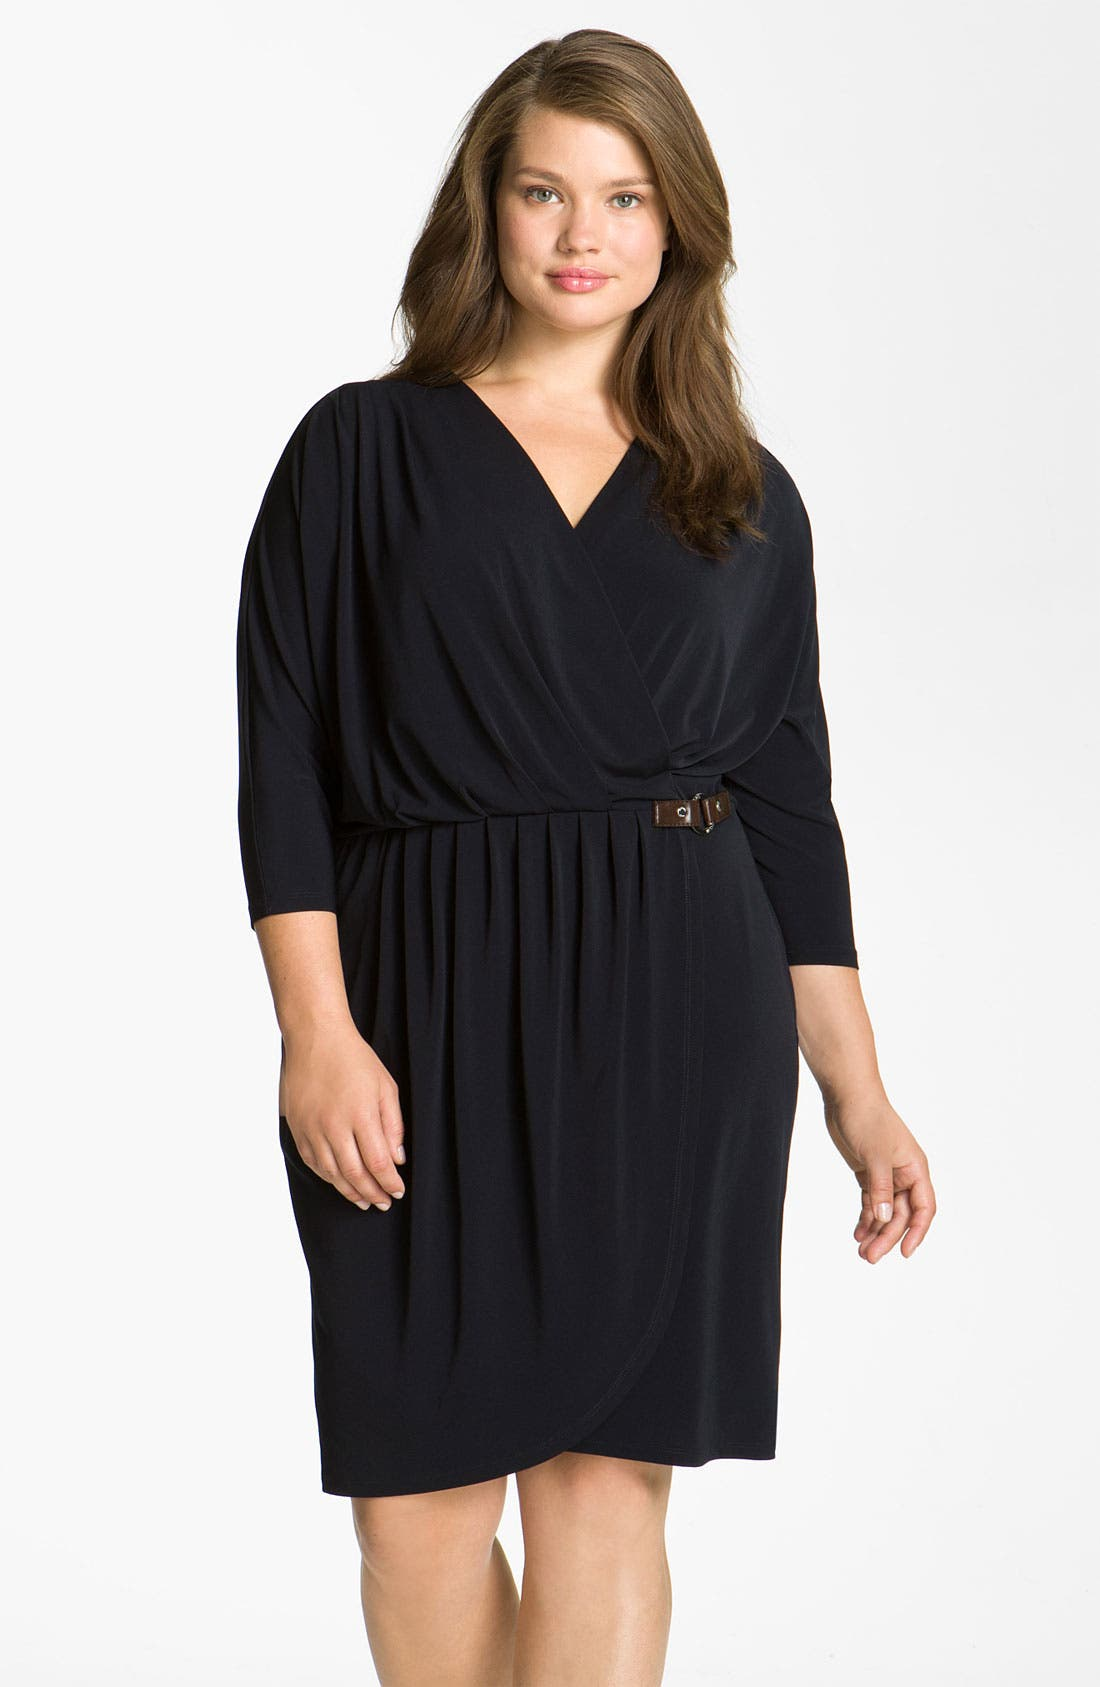 Alternate Image 1 Selected - MICHAEL Michael Kors Surplice Jersey Dress (Plus)